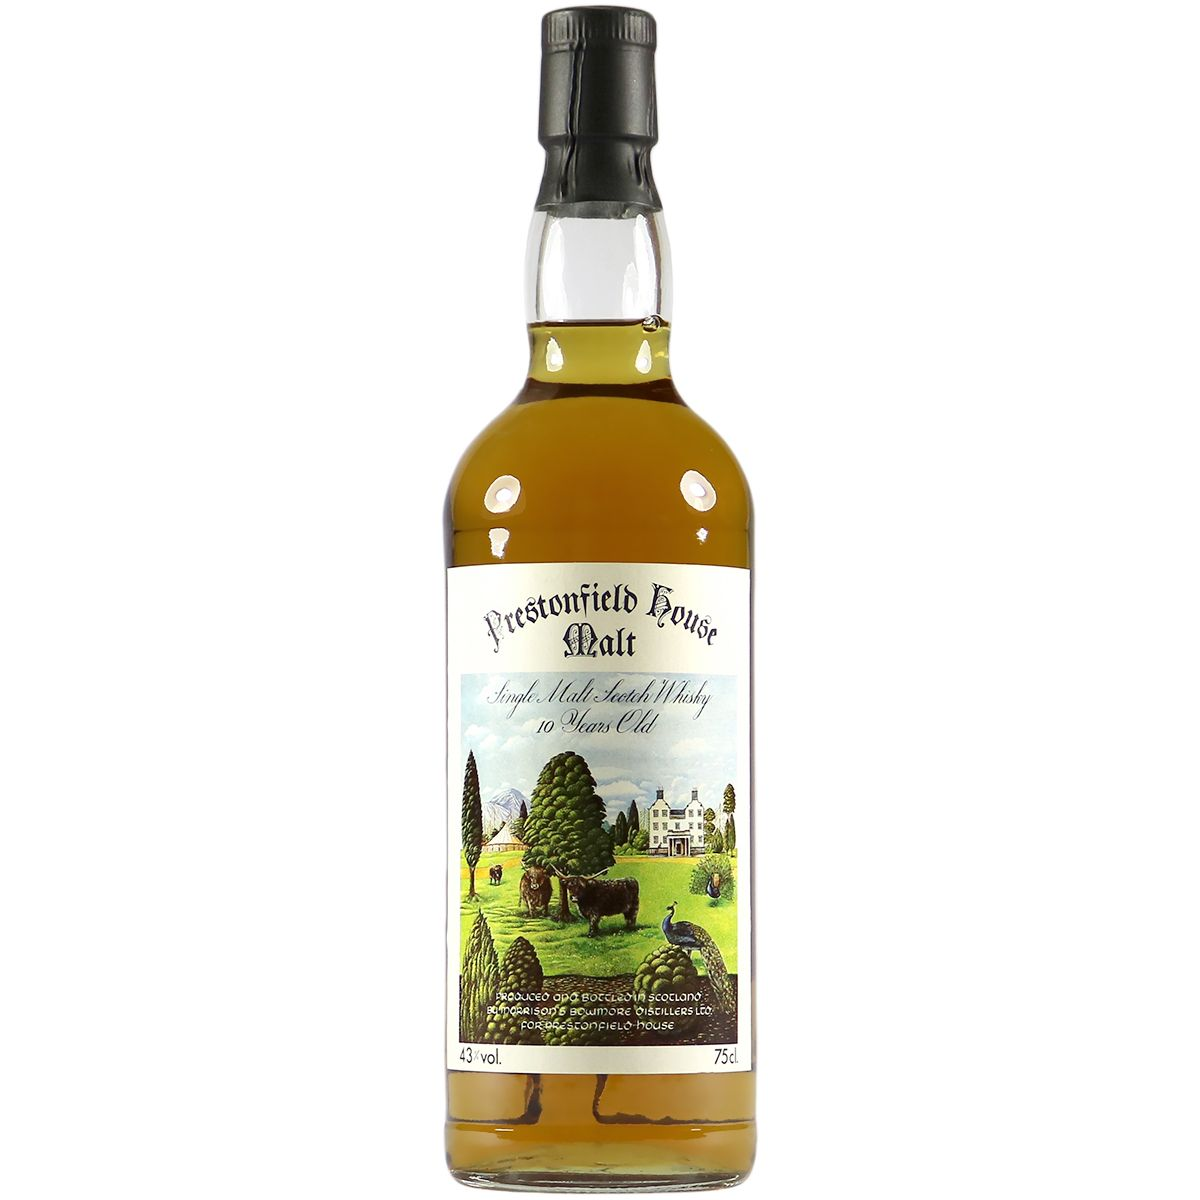 Glen Garioch 10 Year Old, Prestonfield House Malt | The Whisky Vault